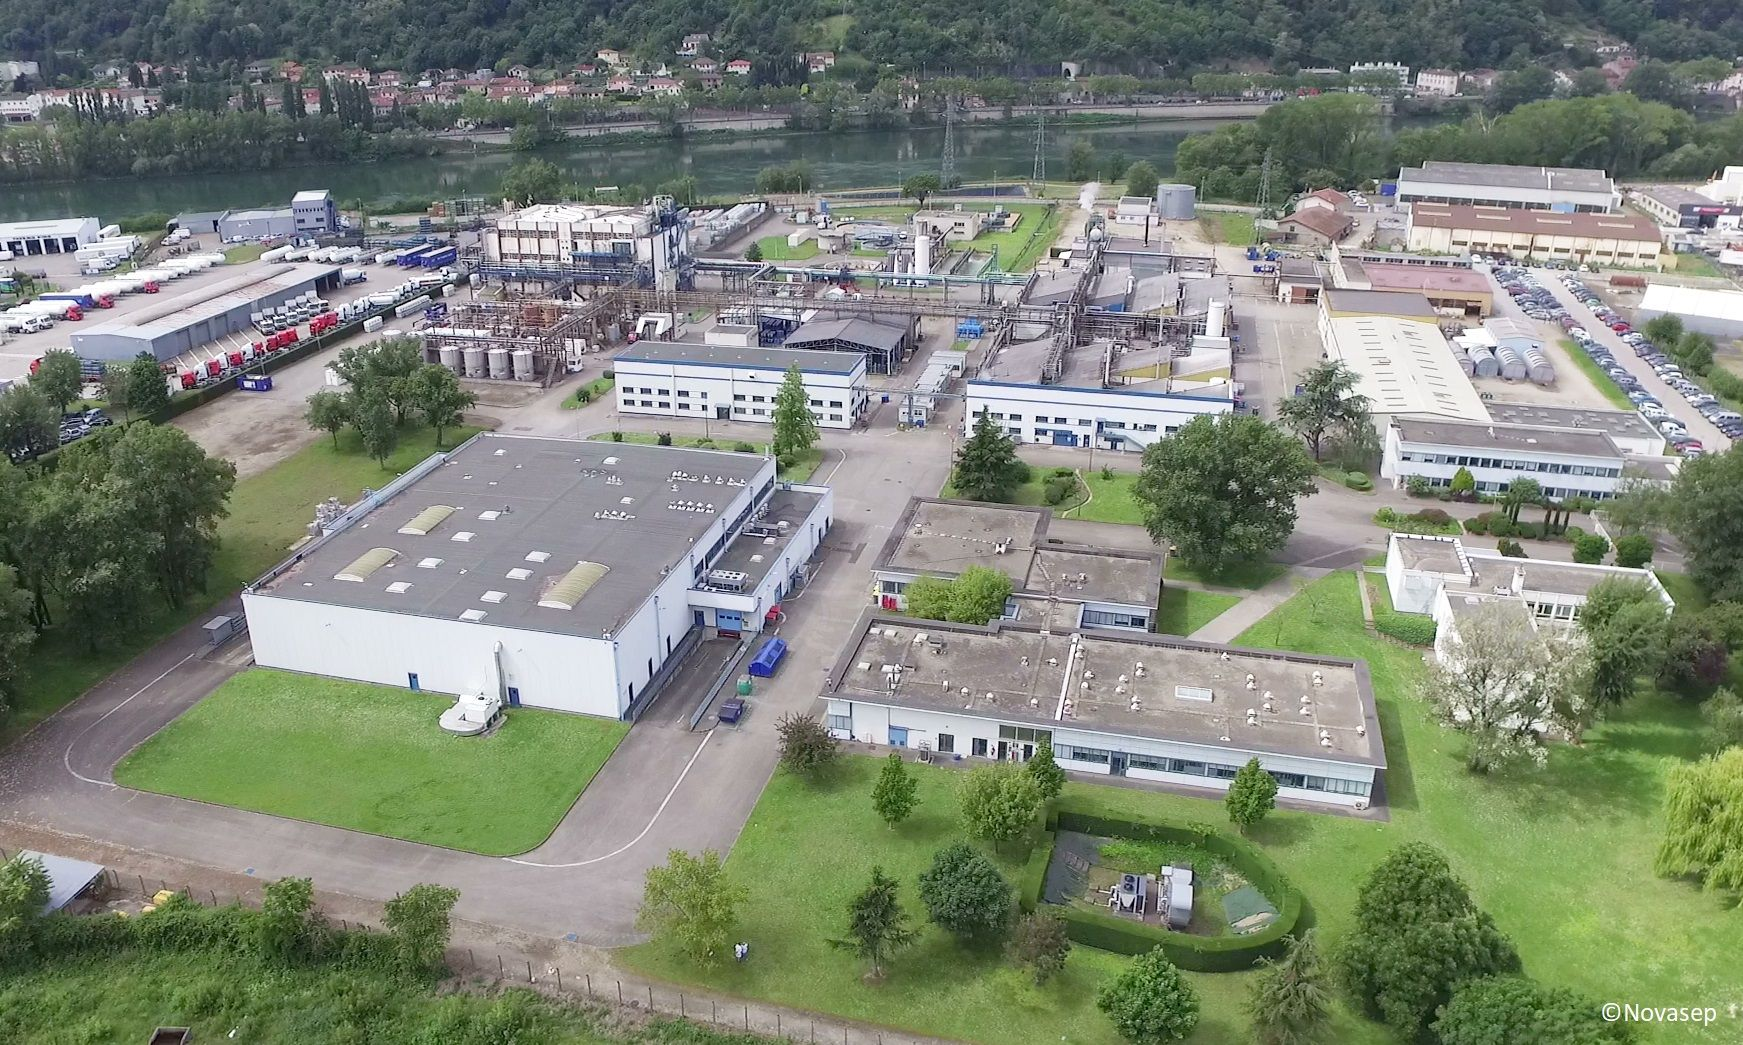 Novasep Manufacturing Facility For Ozonolysis In Chasse Sur Rhone